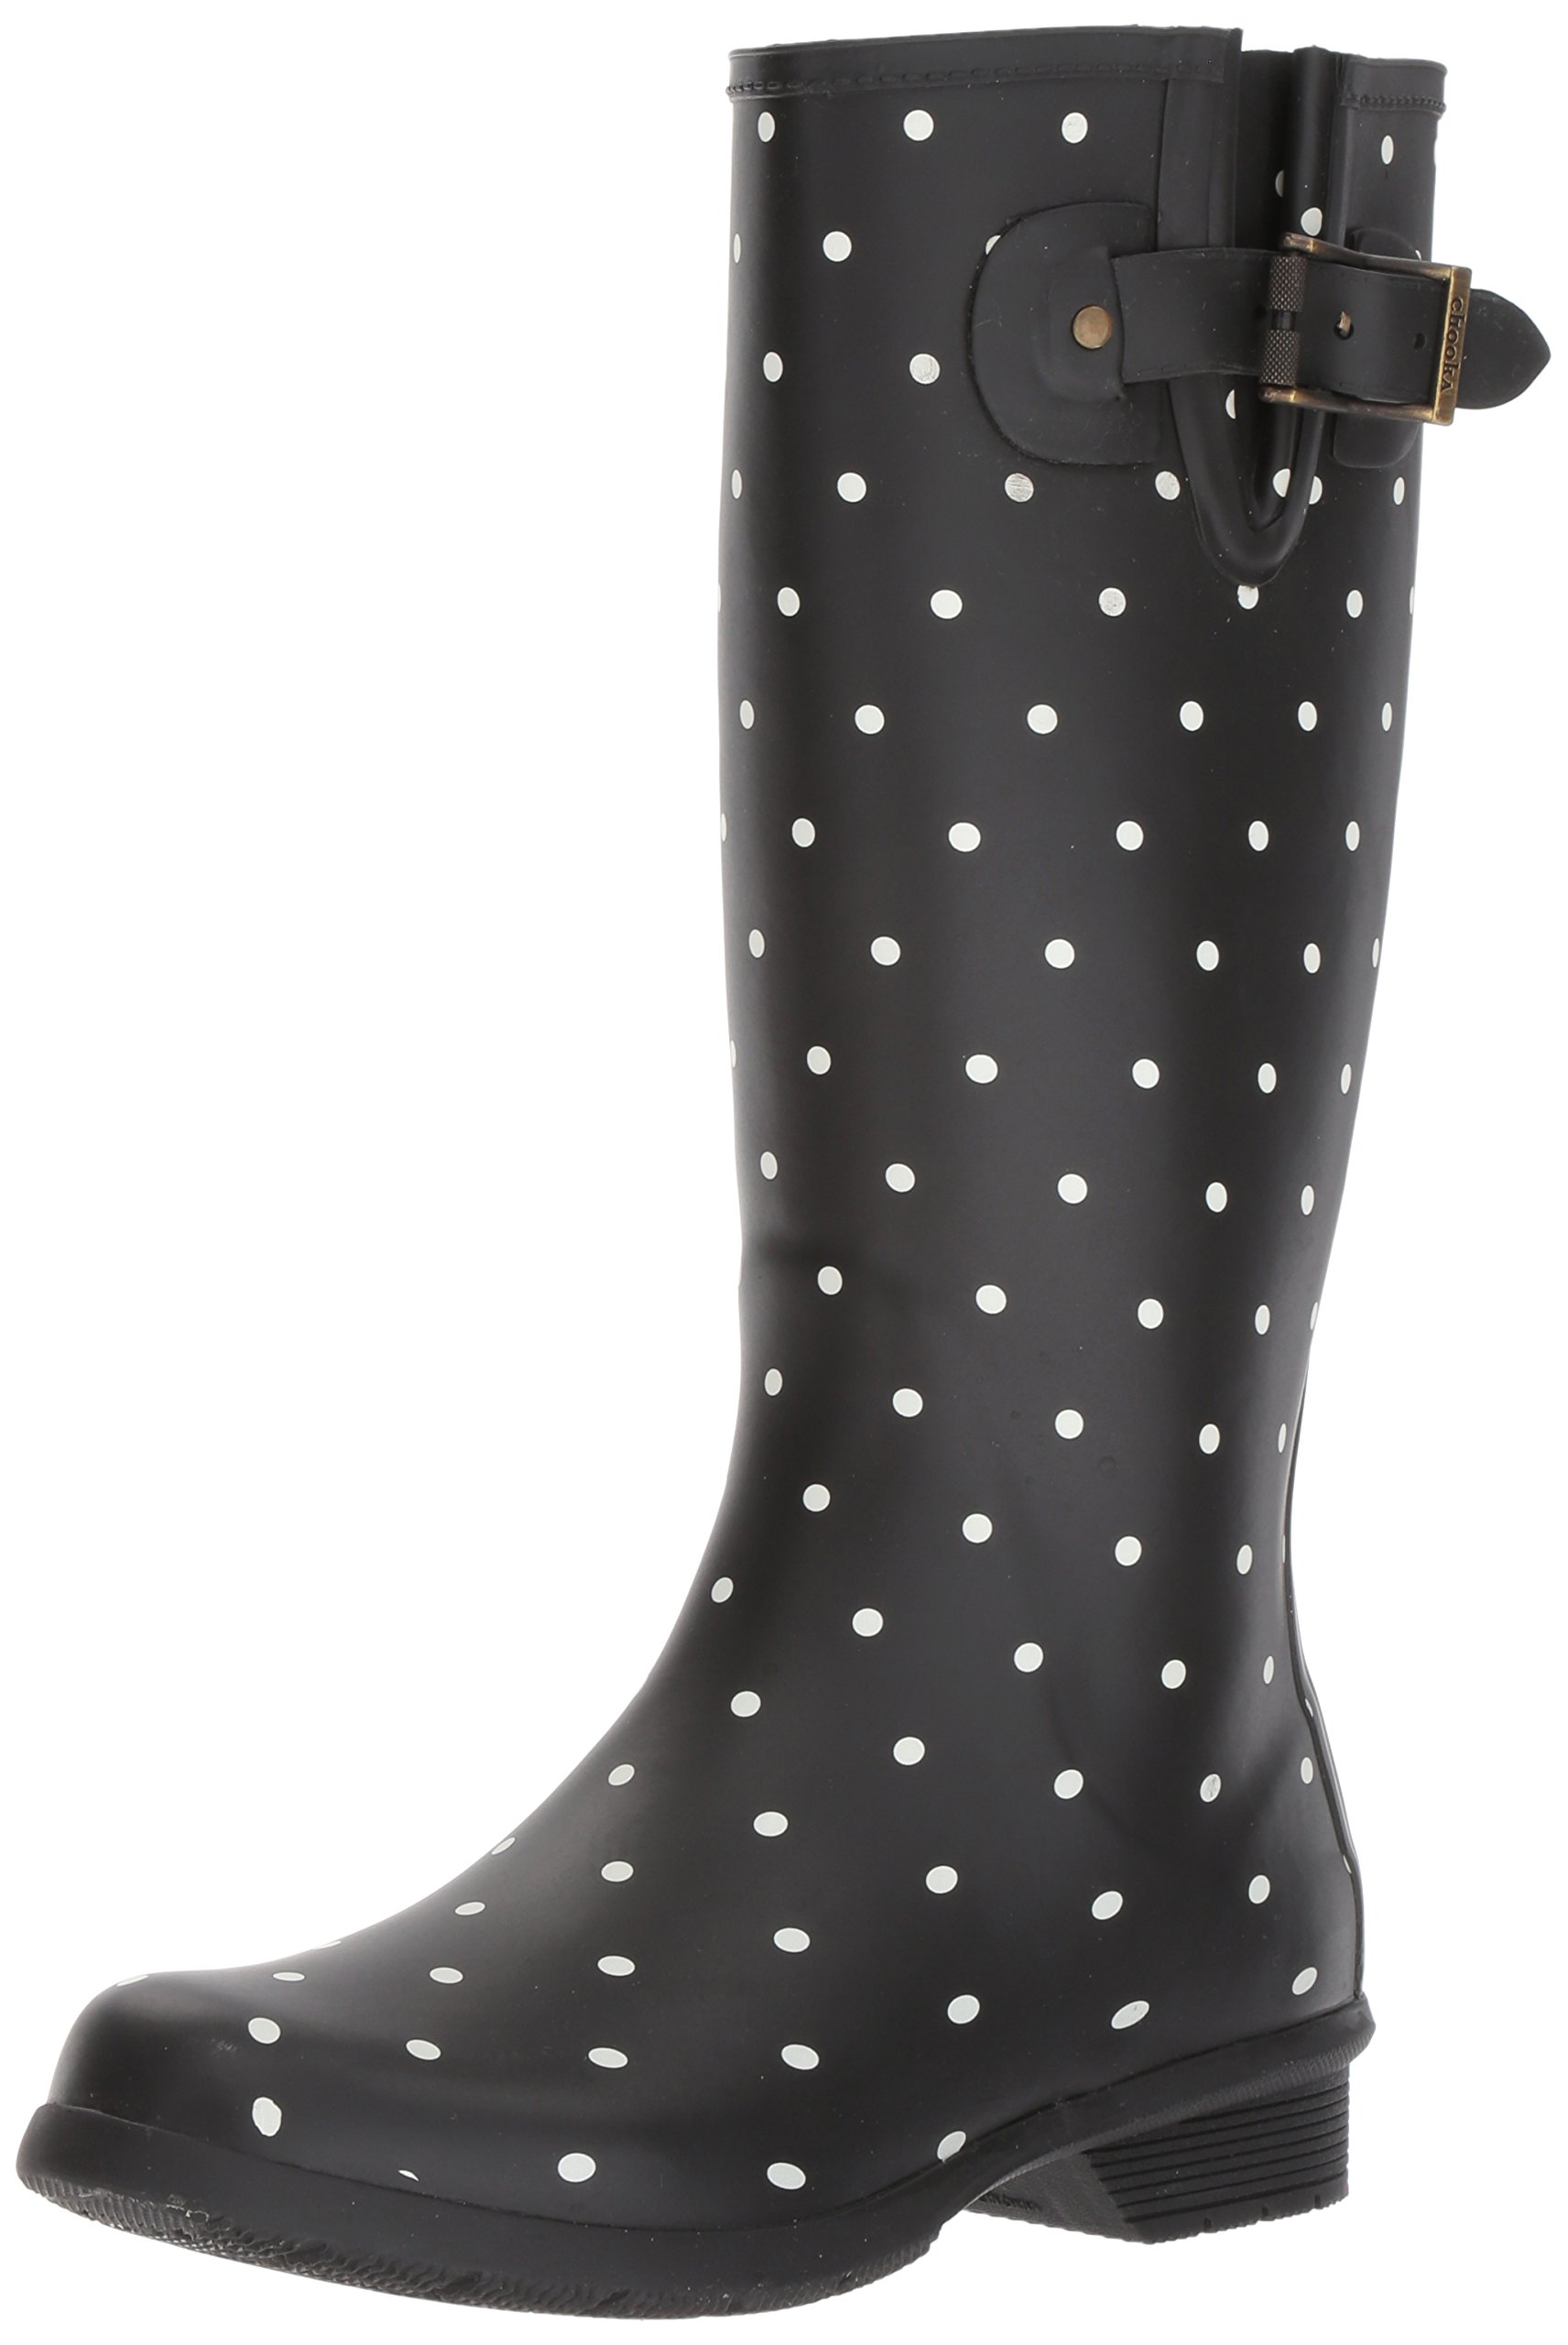 Chooka Women's Tall Memory Foam Rain Boot, Dot Blanc Black, 9 M US